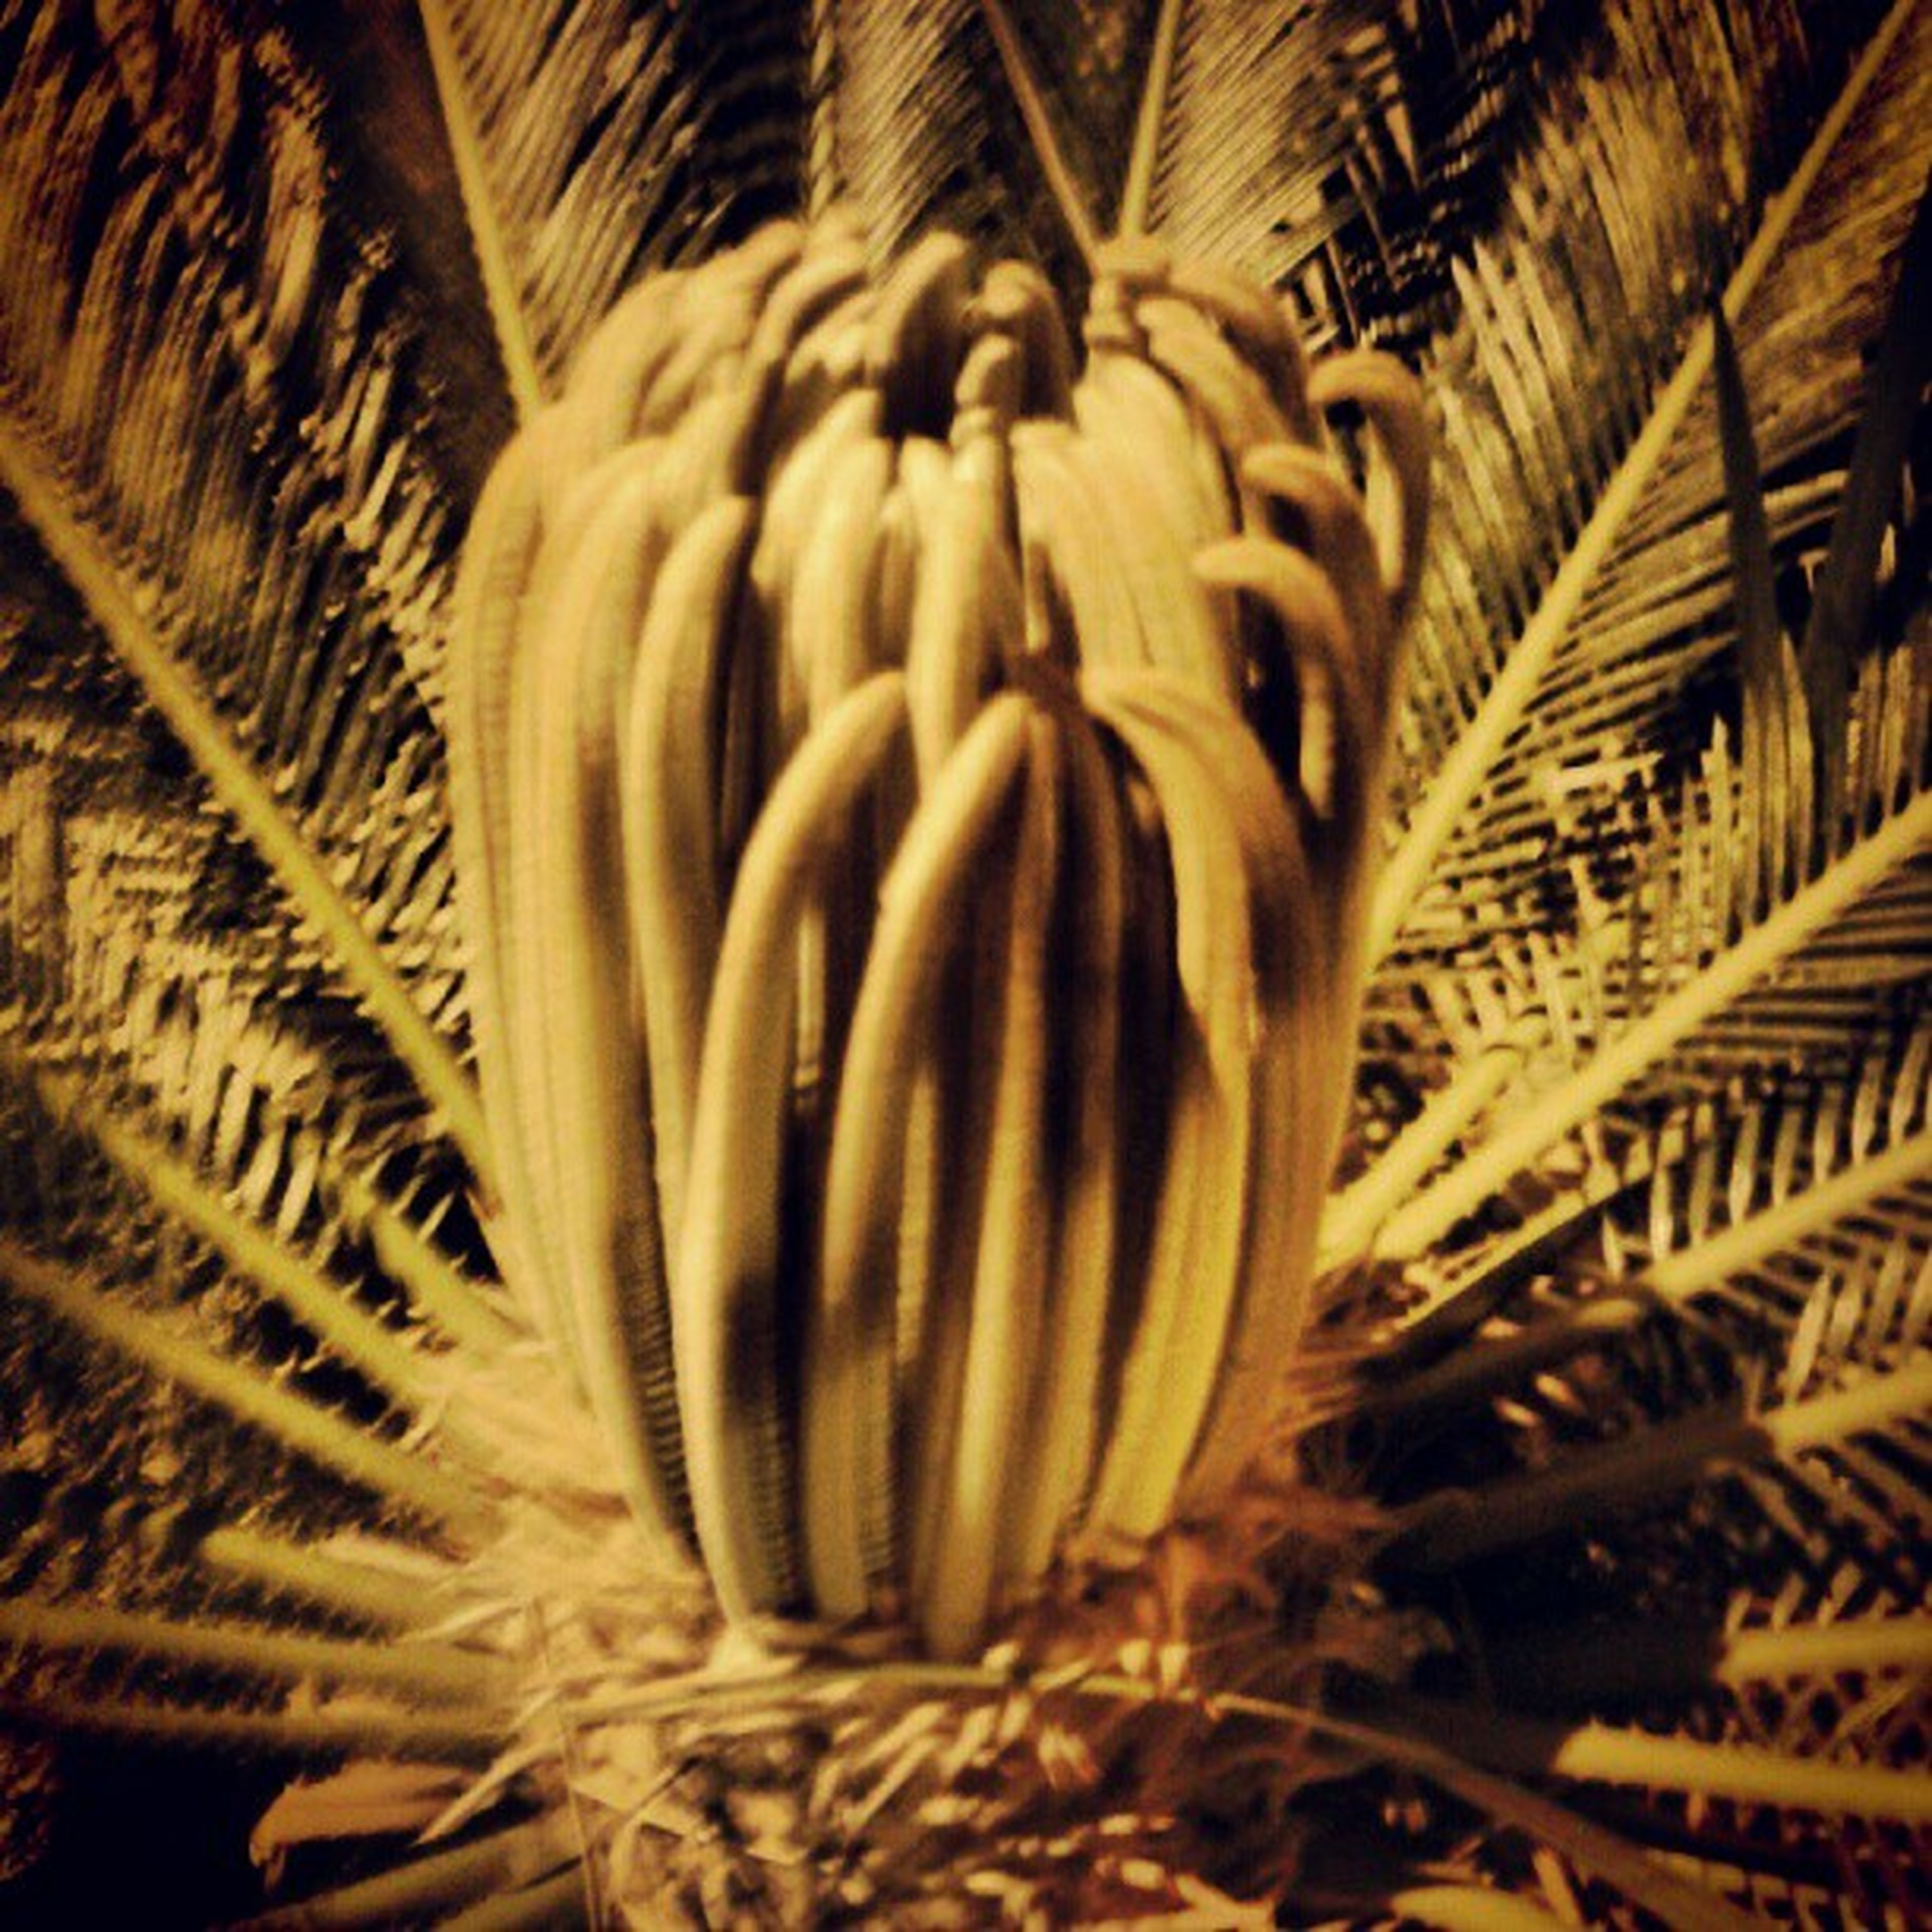 close-up, pattern, growth, selective focus, nature, no people, indoors, full frame, backgrounds, plant, palm leaf, day, thorn, spiked, natural pattern, textured, focus on foreground, cactus, dry